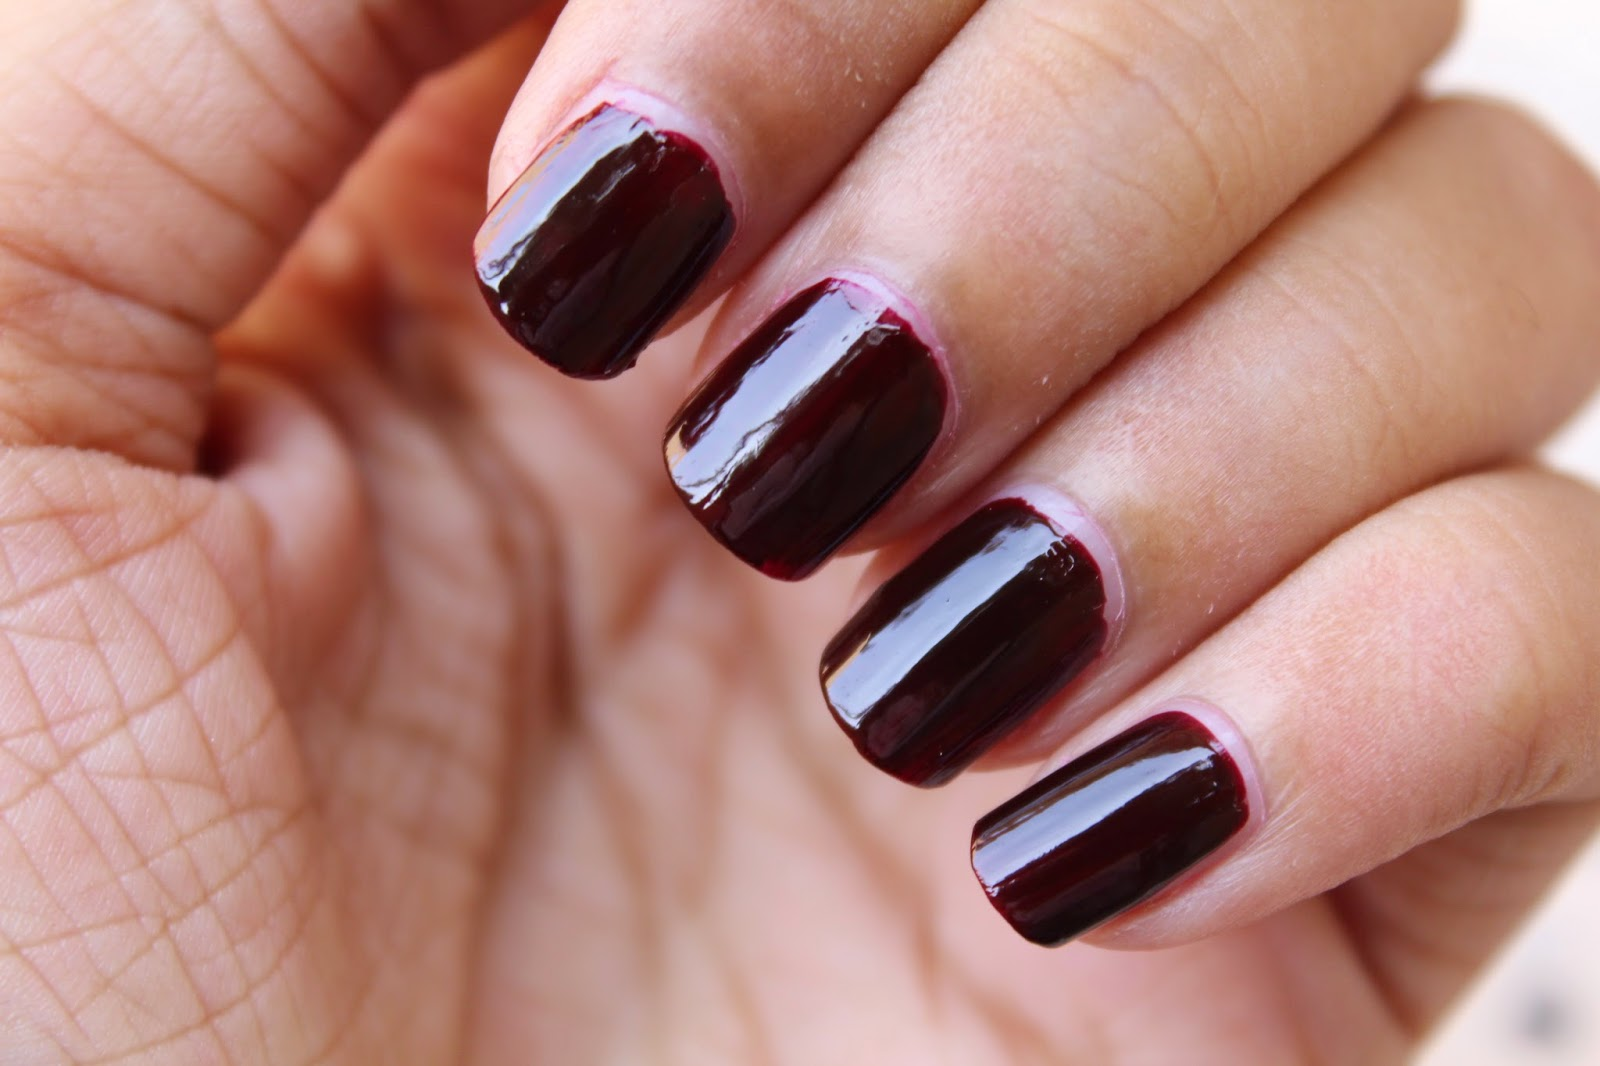 Rimmel Salon Pro Urban Purple Swatch review pakistan, MUA nail varnish red fever swatch review pakistan, Maybelline color show burgundy kiss swatch review pakistan, max factor max effect mini nail polish intense plum swatch review pakistan, Pakistani beauty nail art book blog